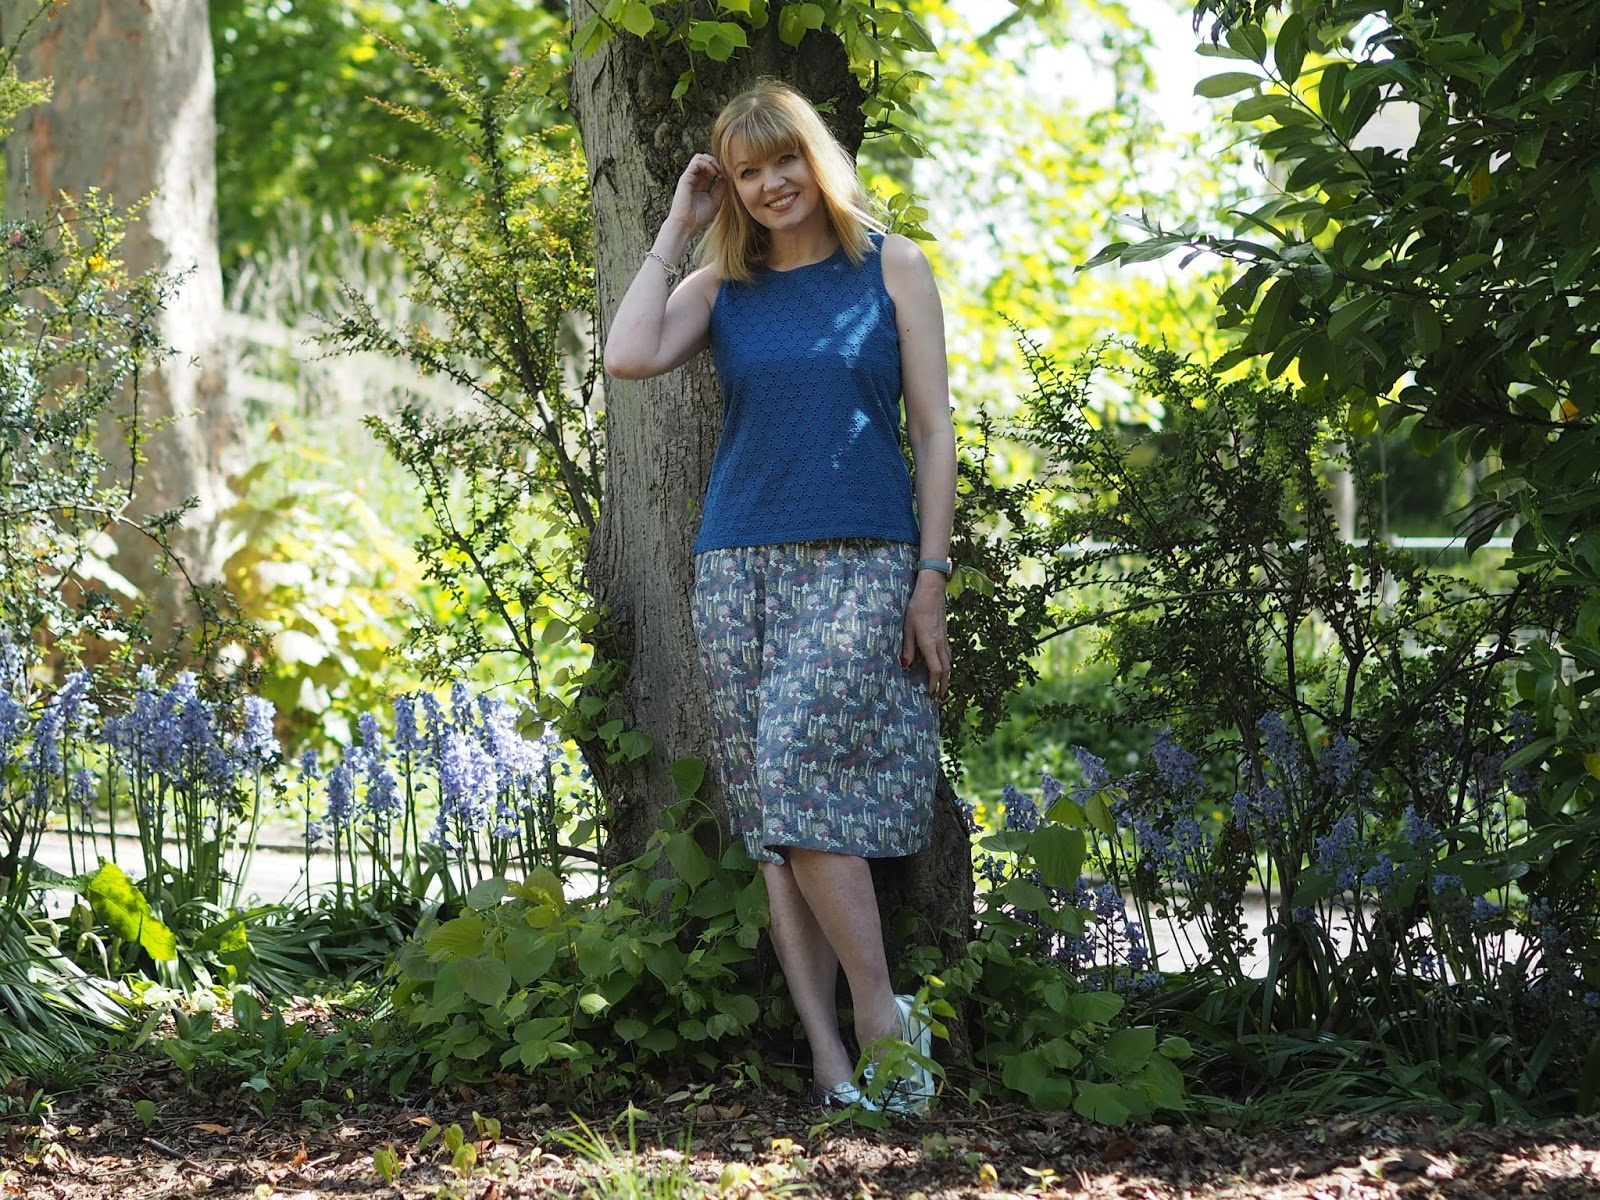 What-Lizzy-Loves-cobalt- blue-broderie-shell-top-floral-skirt-silver-Superga-sneakers-pumps